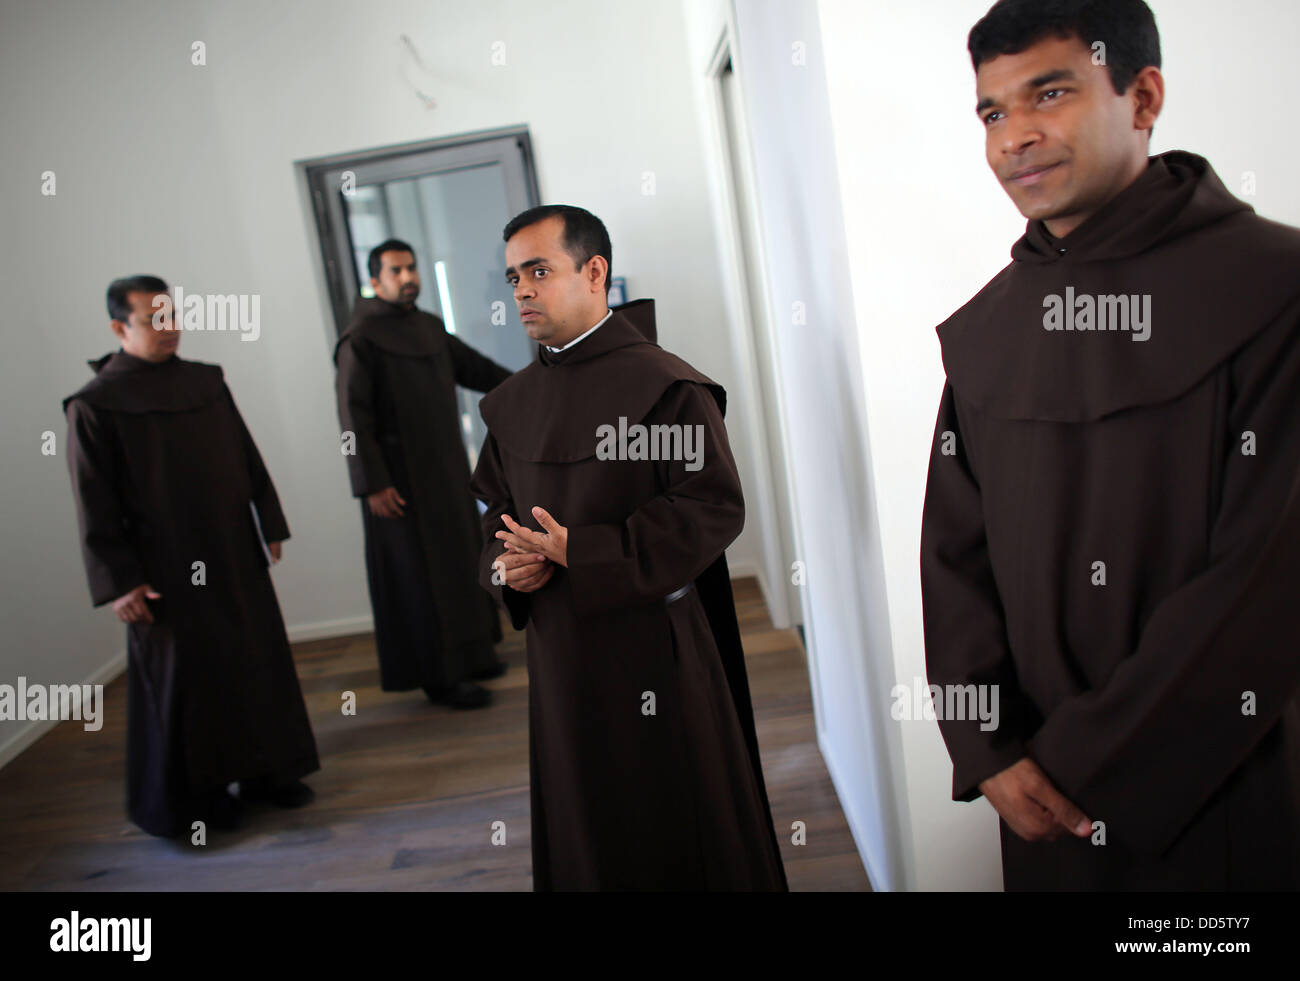 monks of the discalced carmelites are photographes in the